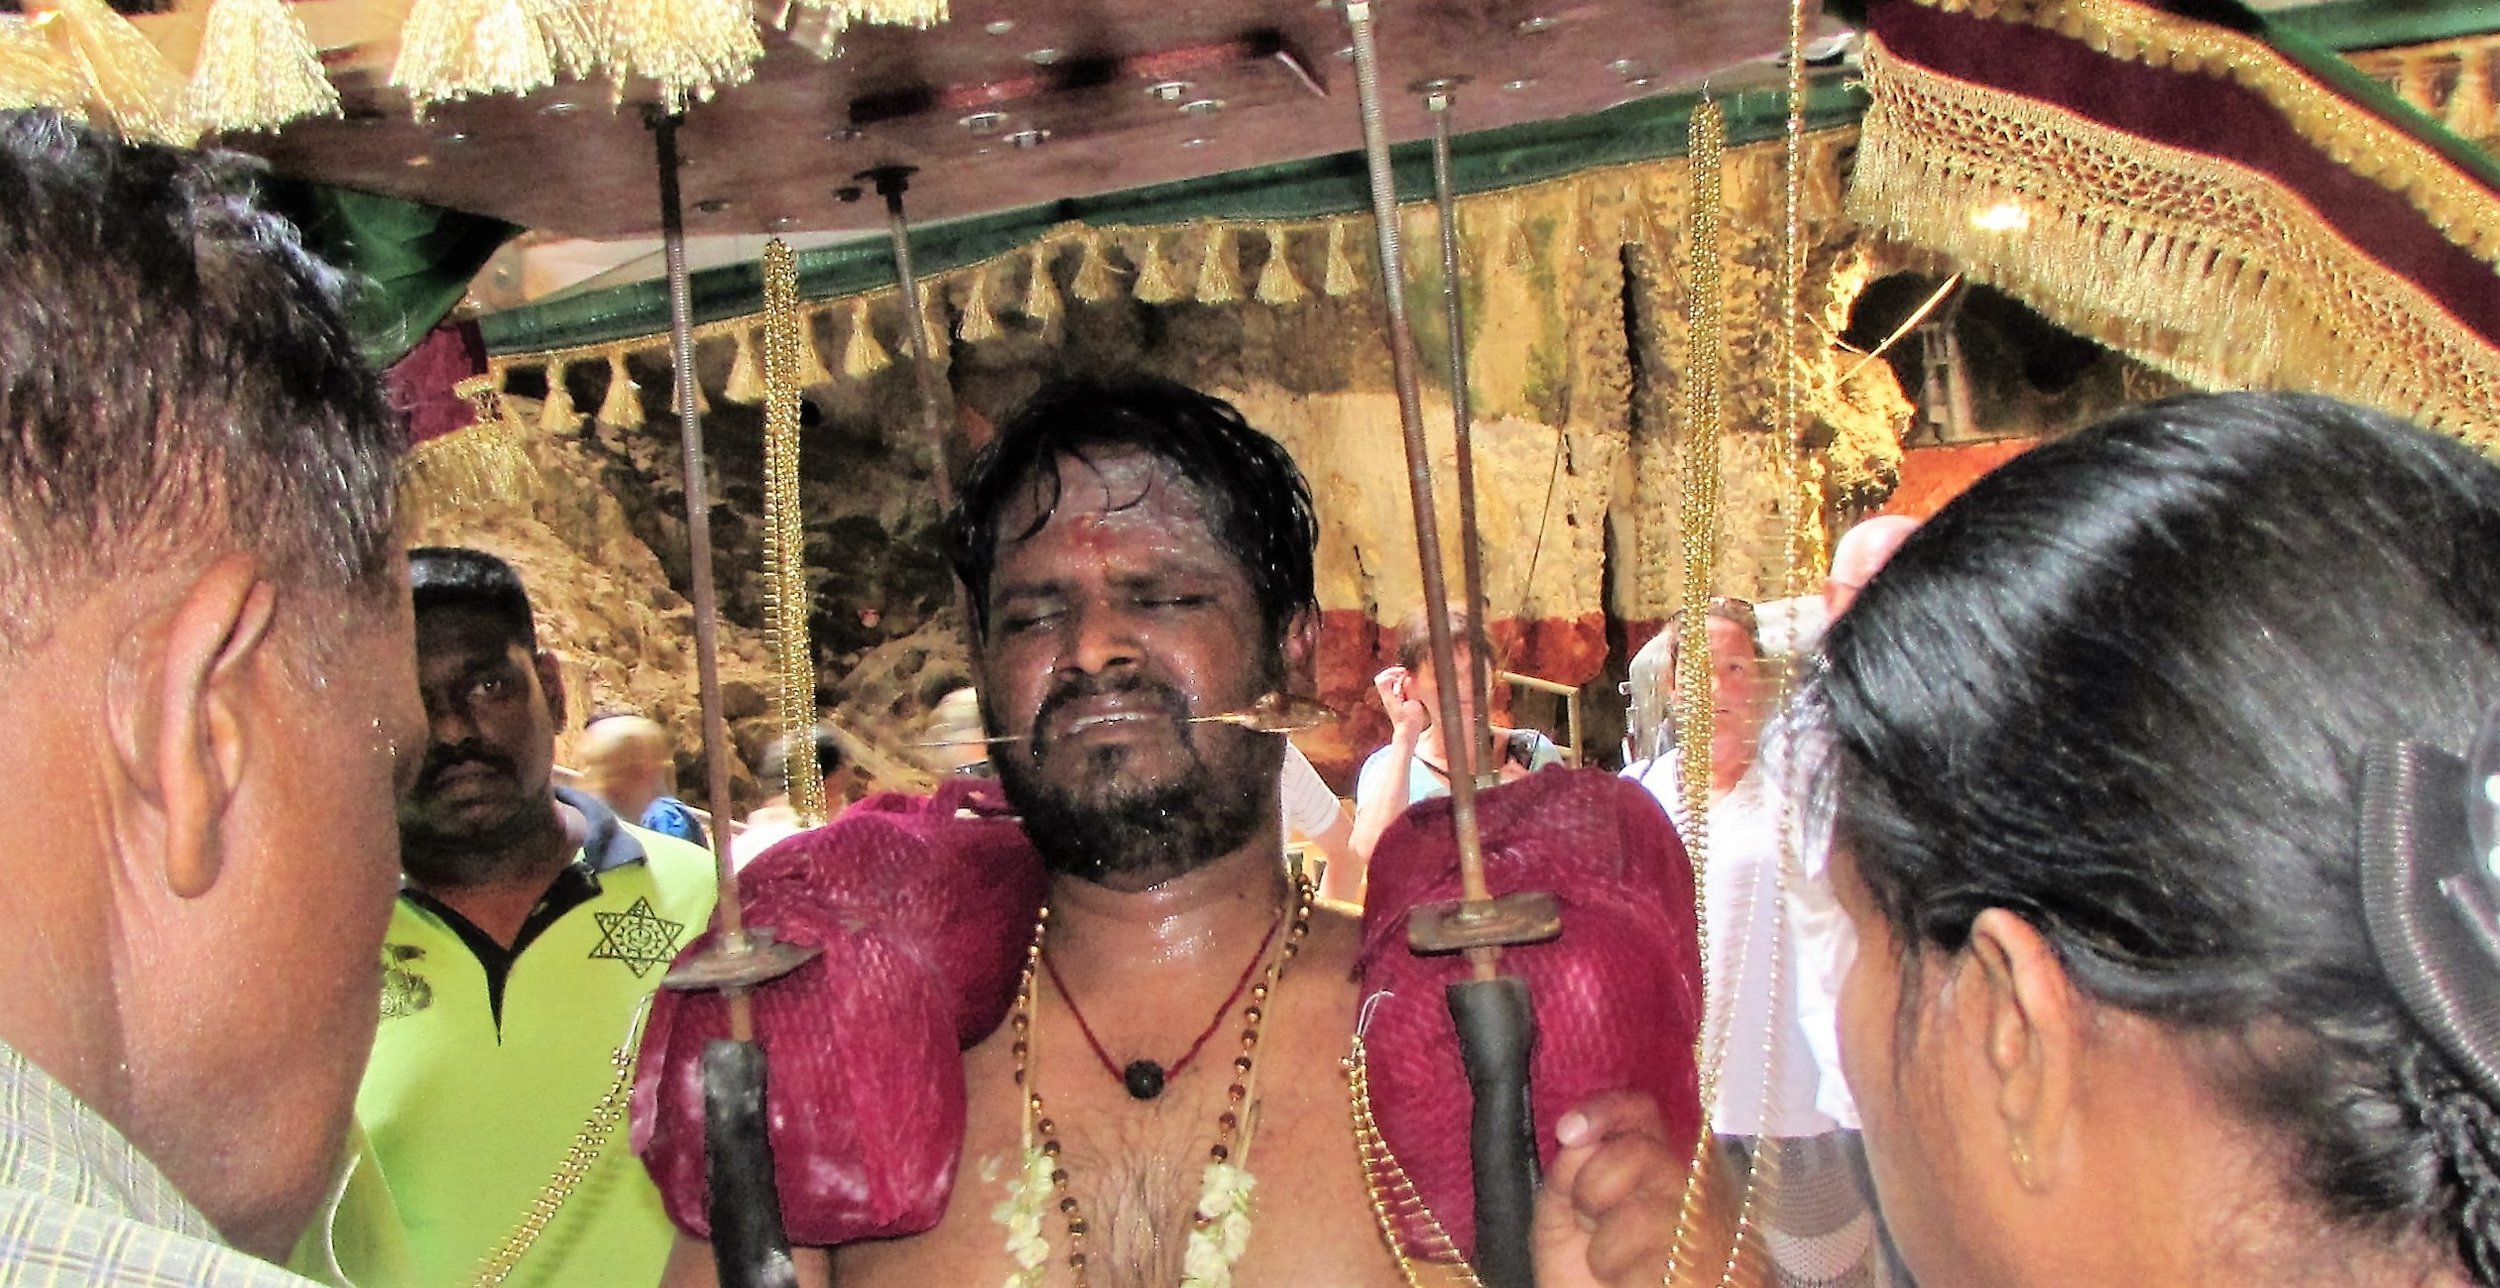 Kavadi bearer in trance